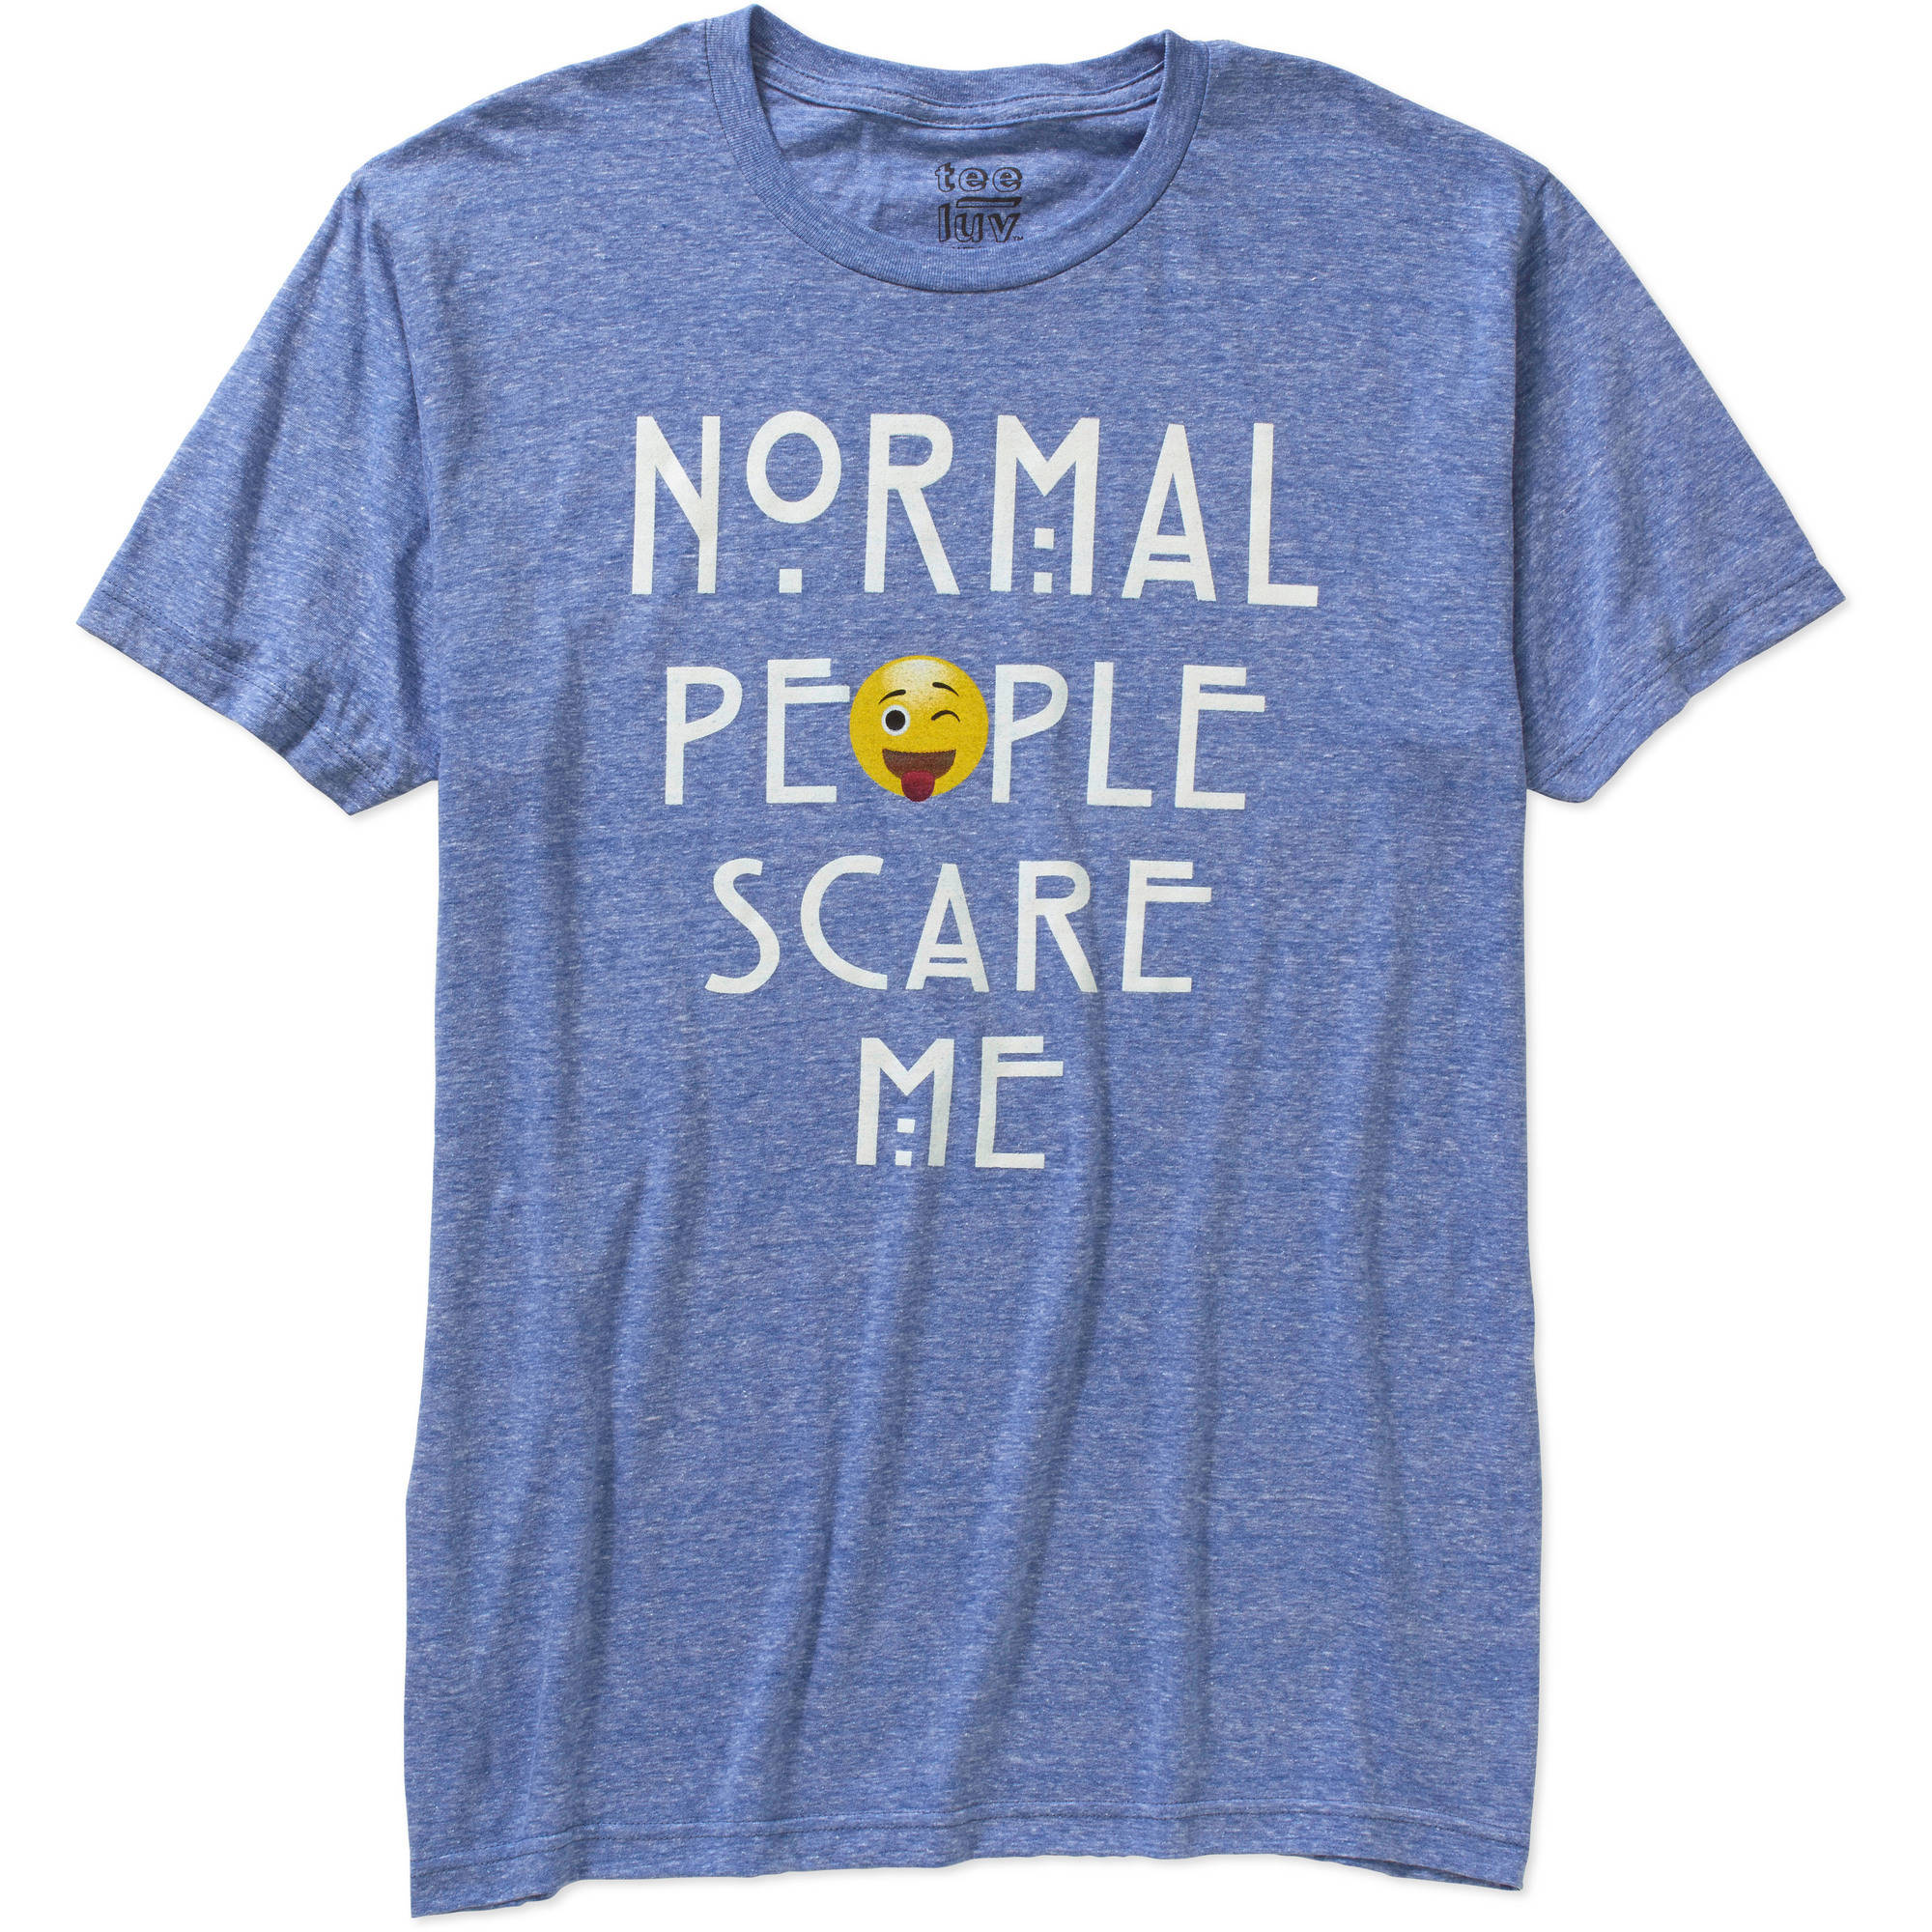 Normal People Scare Me Big Men's Graphic Tee, 2XL